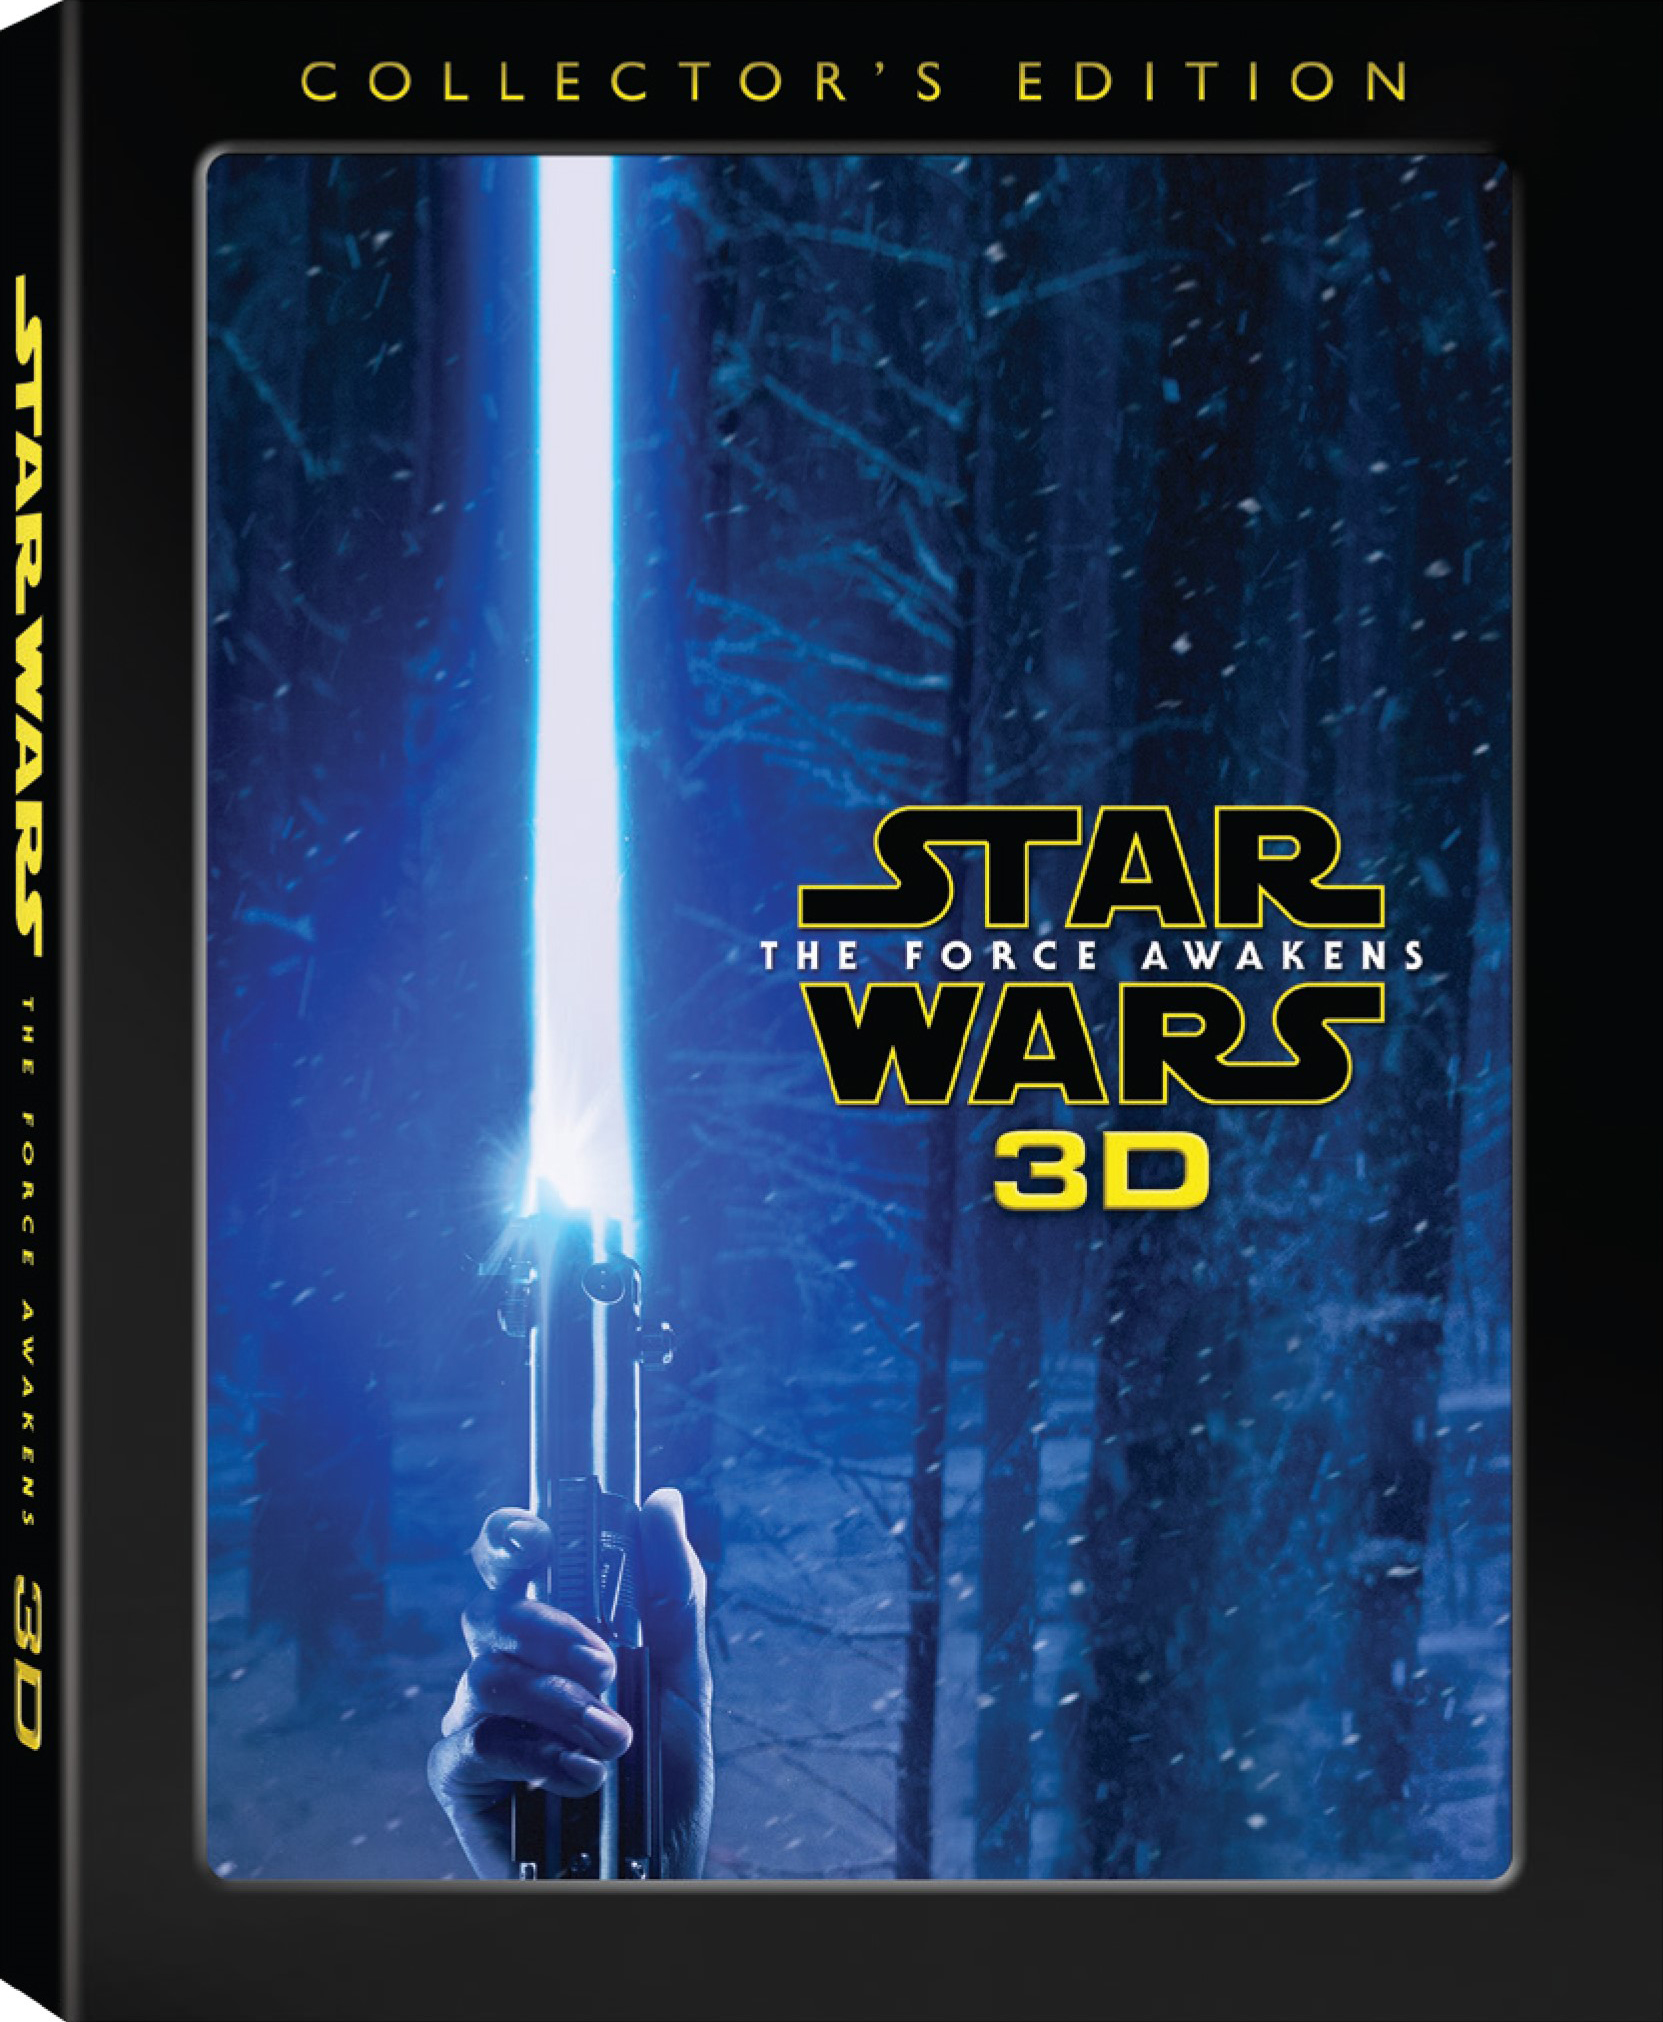 Star Wars: The Force Awakens 3D (2015) Blu-ray